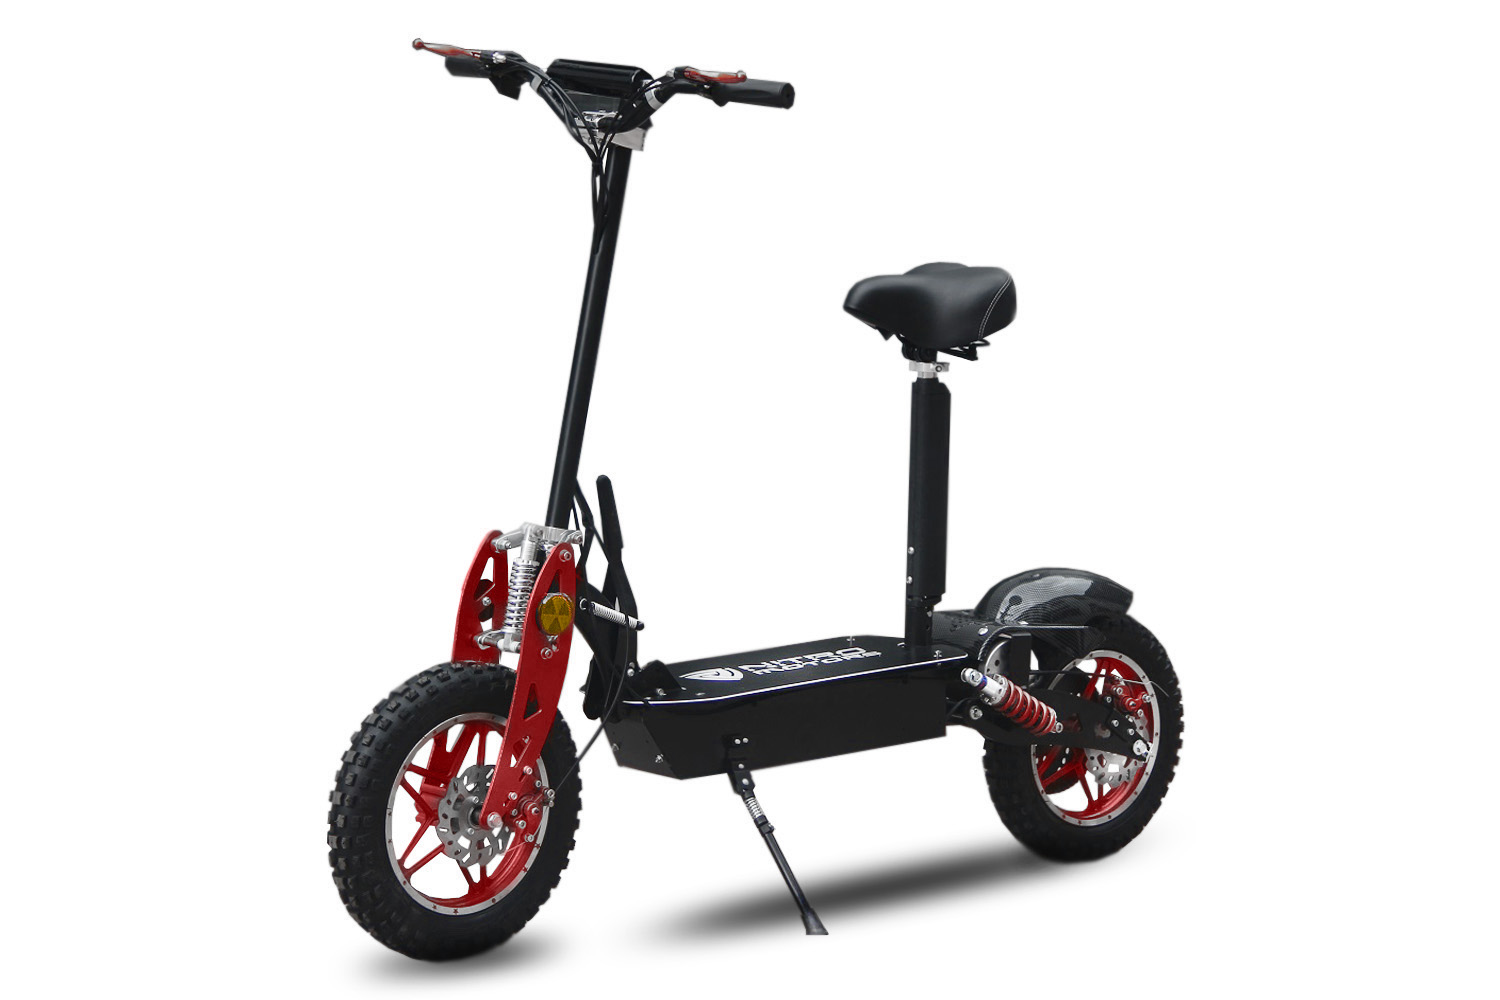 twister offroad electric scooter 1000w 48v 4x12v. Black Bedroom Furniture Sets. Home Design Ideas